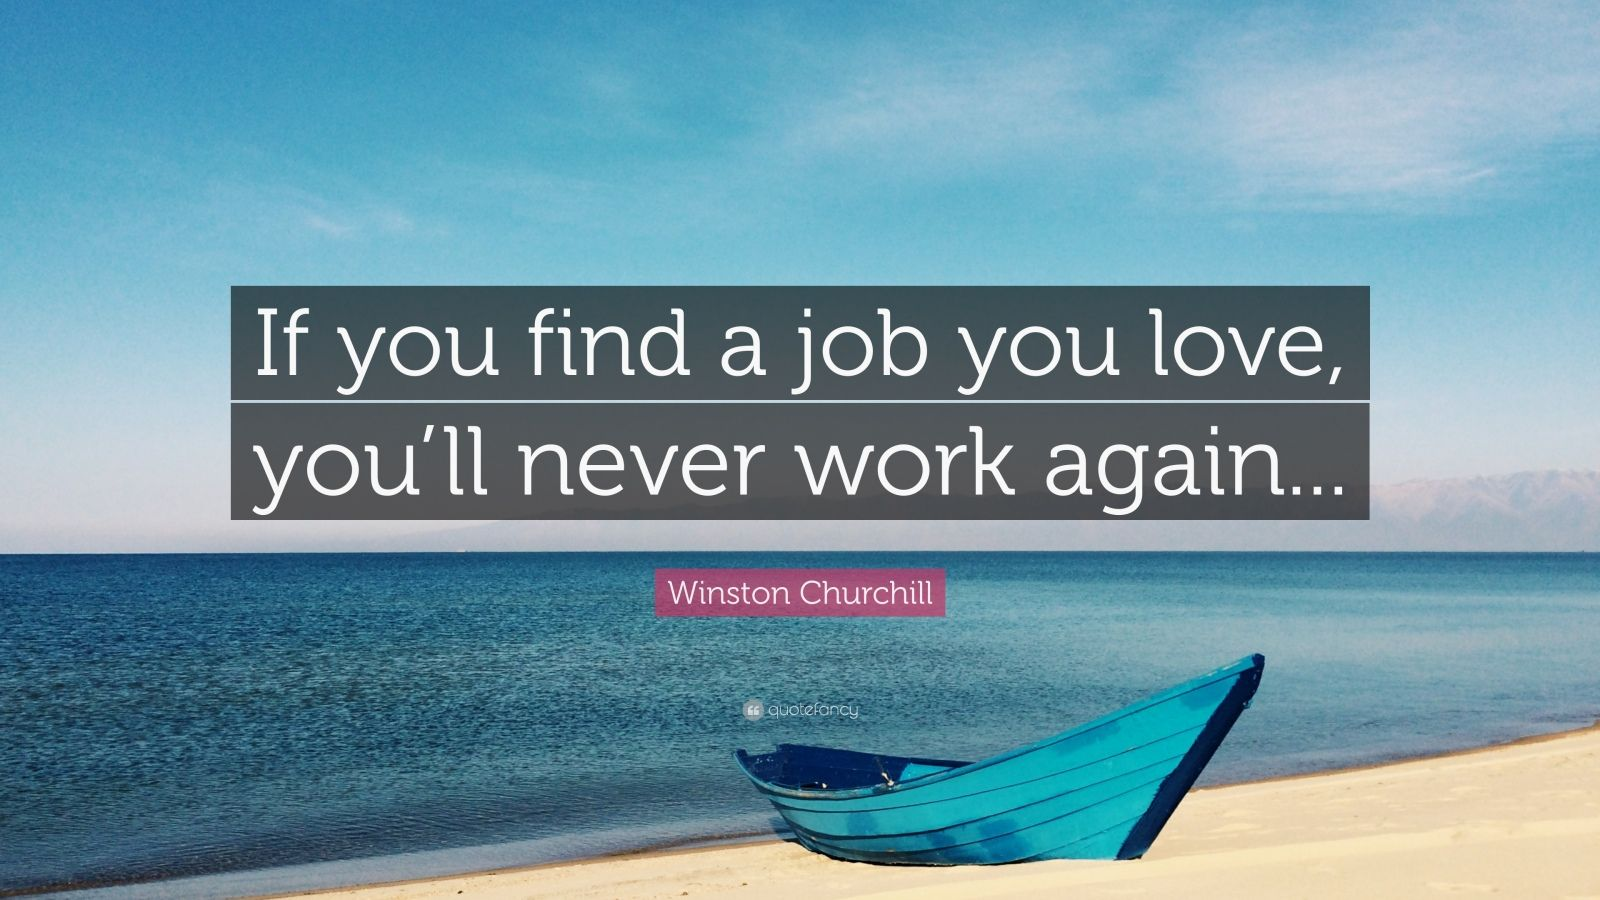 Swimming Wallpaper Quotes Winston Churchill Quote If You Find A Job You Love You